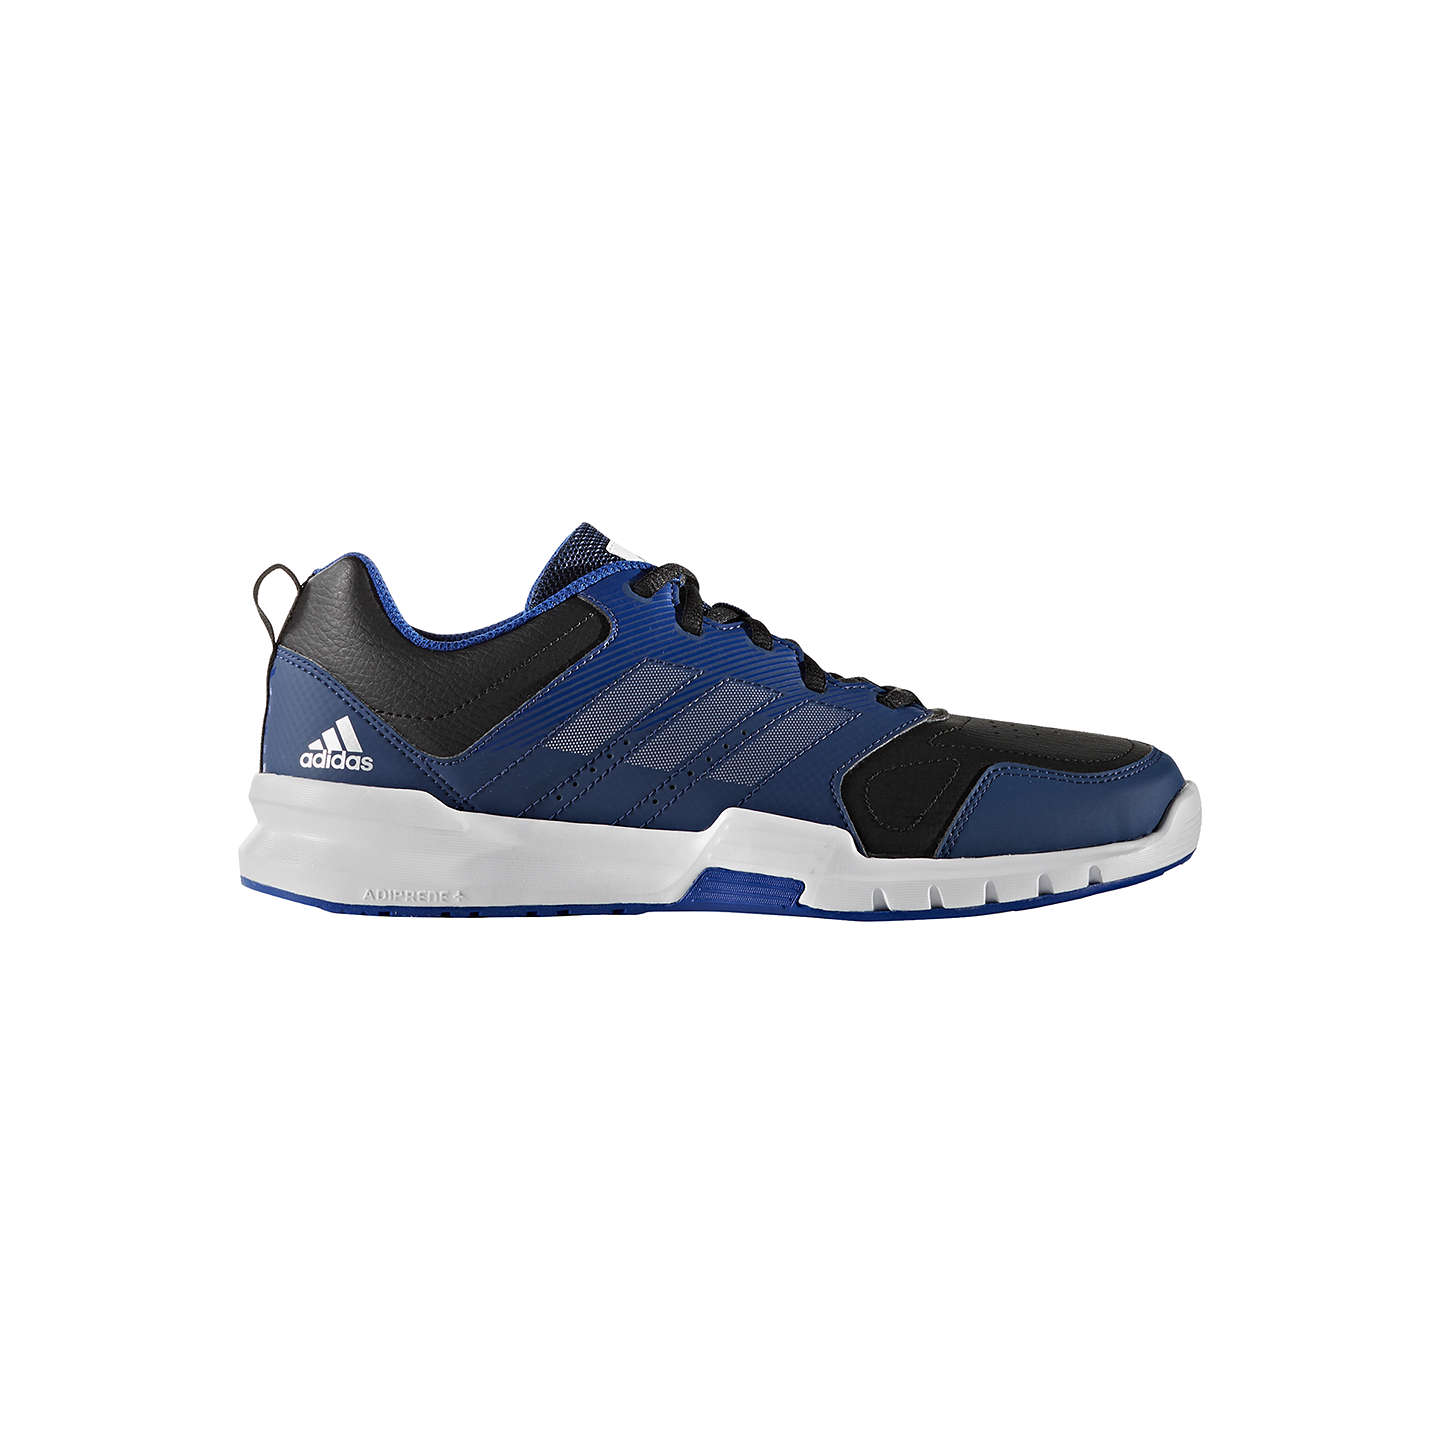 3166ee342f80d5 Adidas Men S Essential Star Cross Training Shoes Style